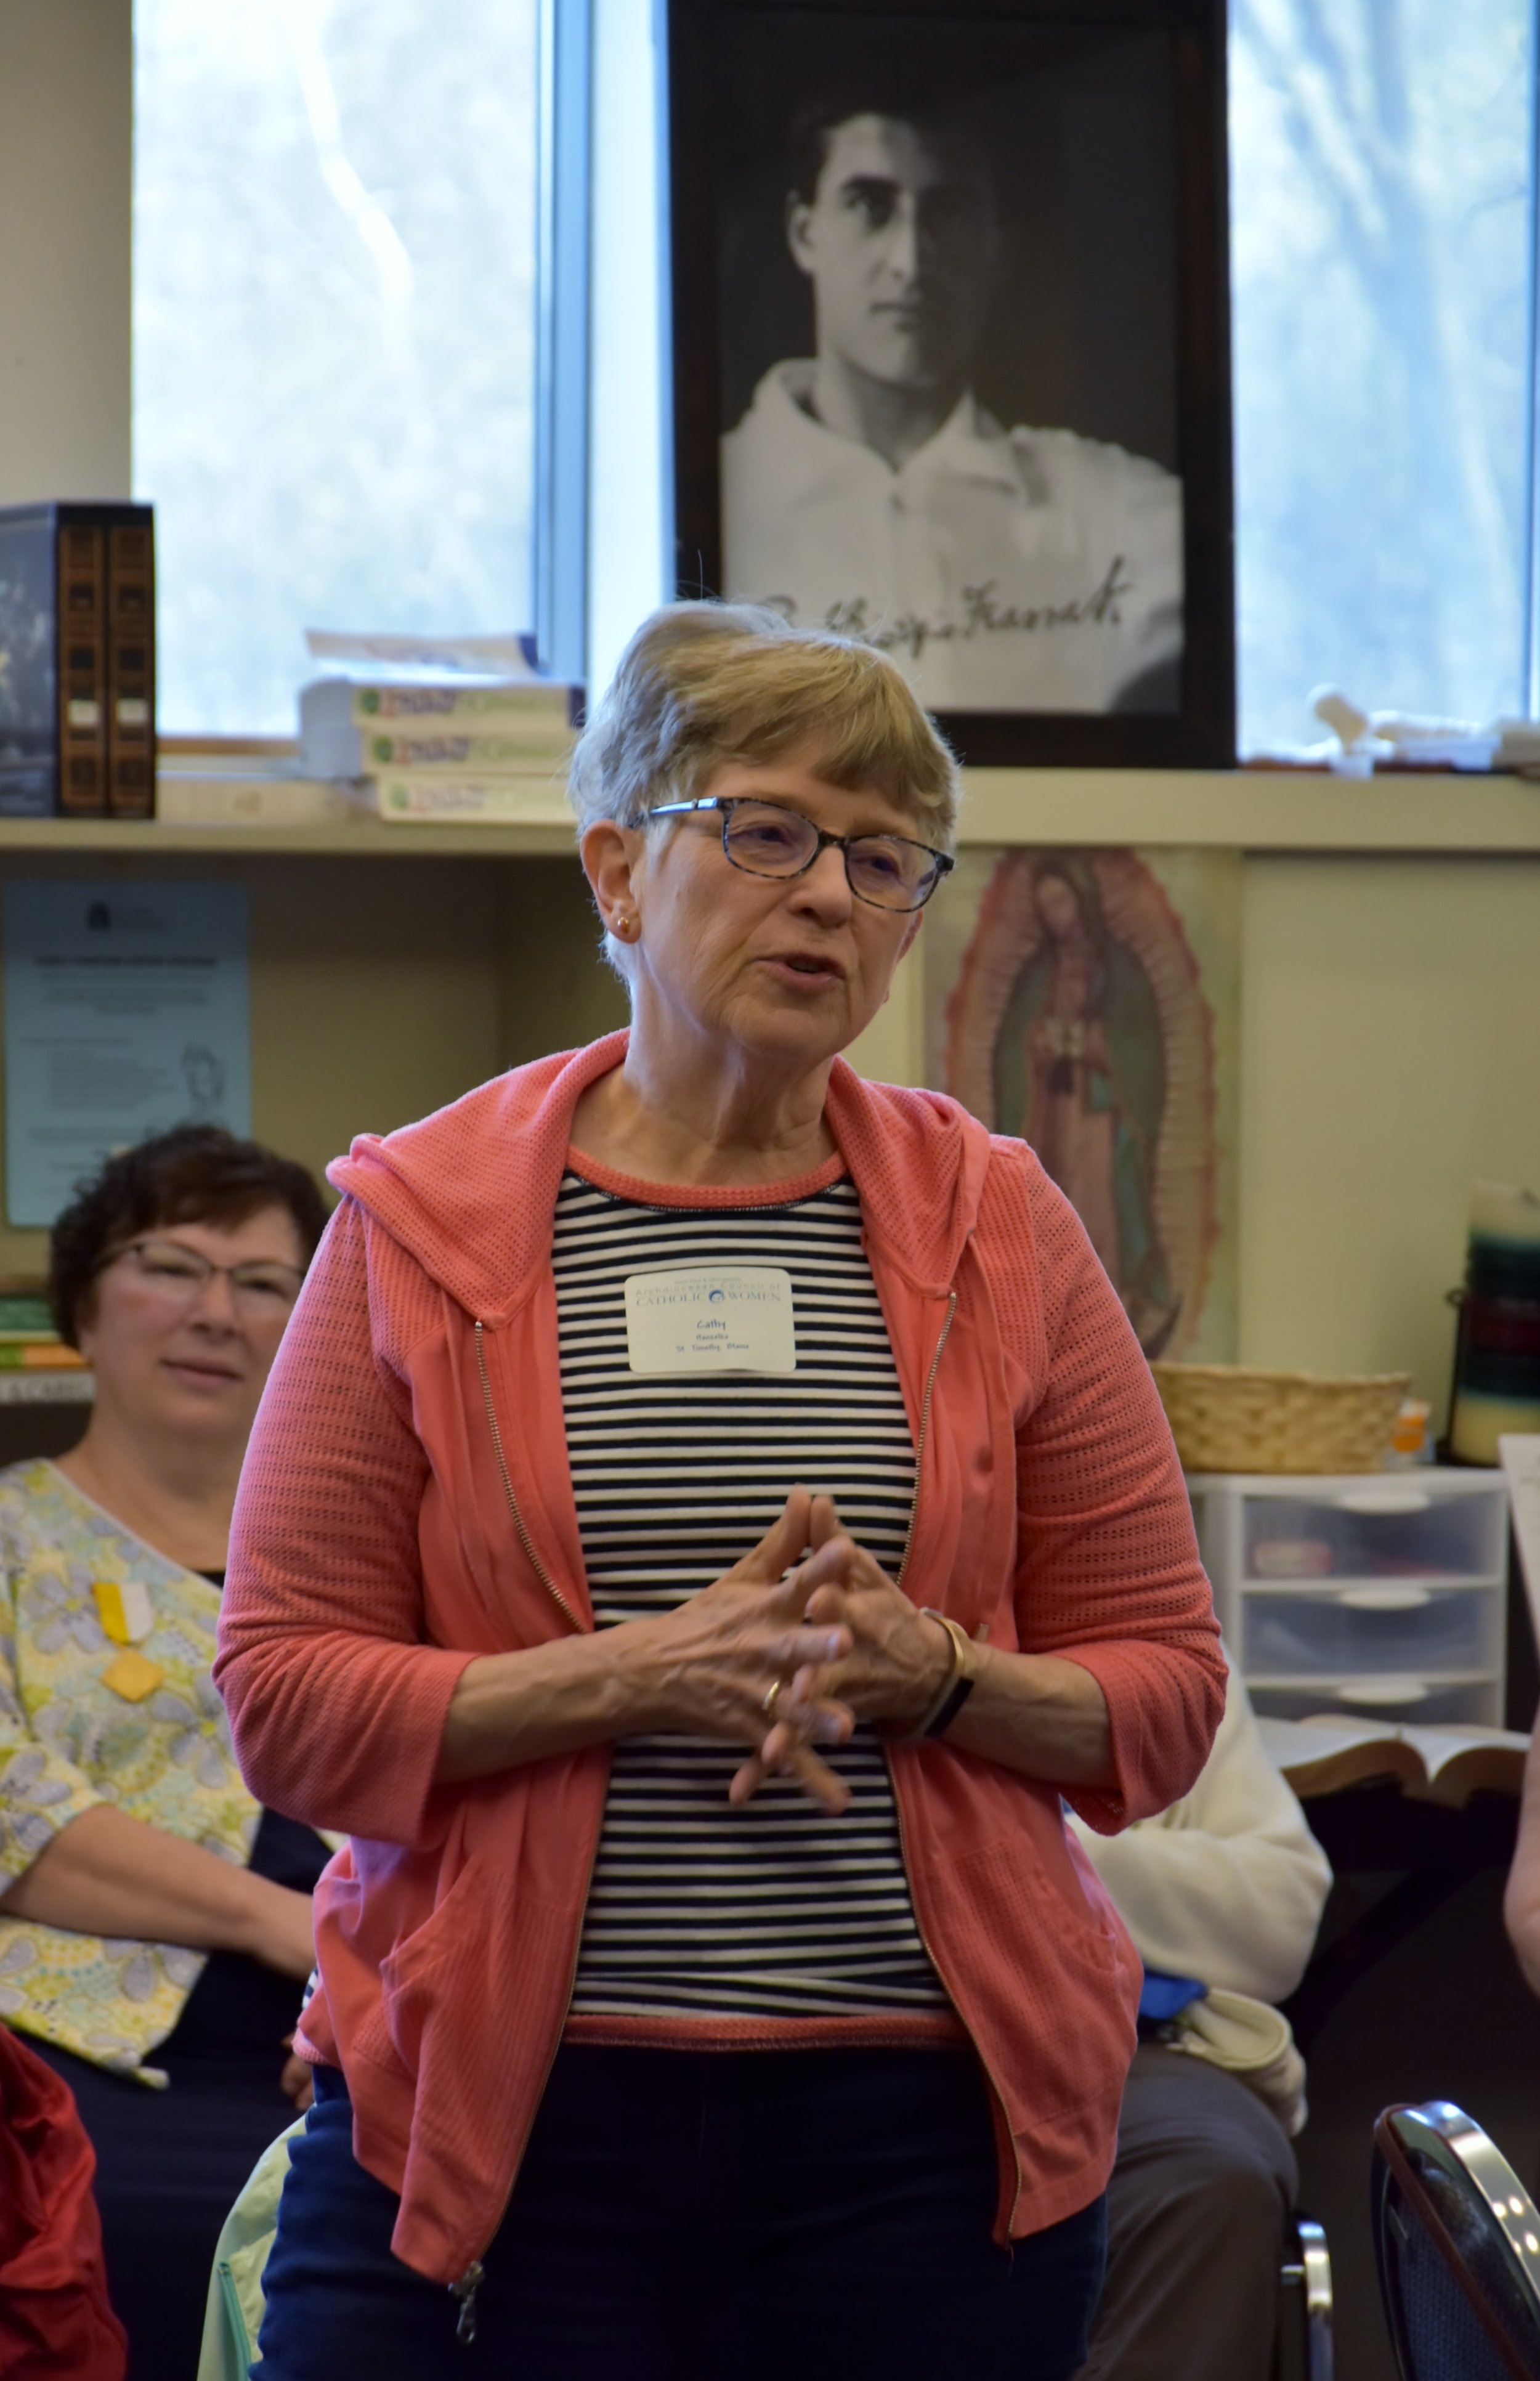 Mission - As a member of National Catholic Council of Women, ACCW acts through its affiliated organizations to support, empower and educate women in spirituality, leadership and service. Our programs respond with Gospel values to the needs of the Church and society in the modern world.